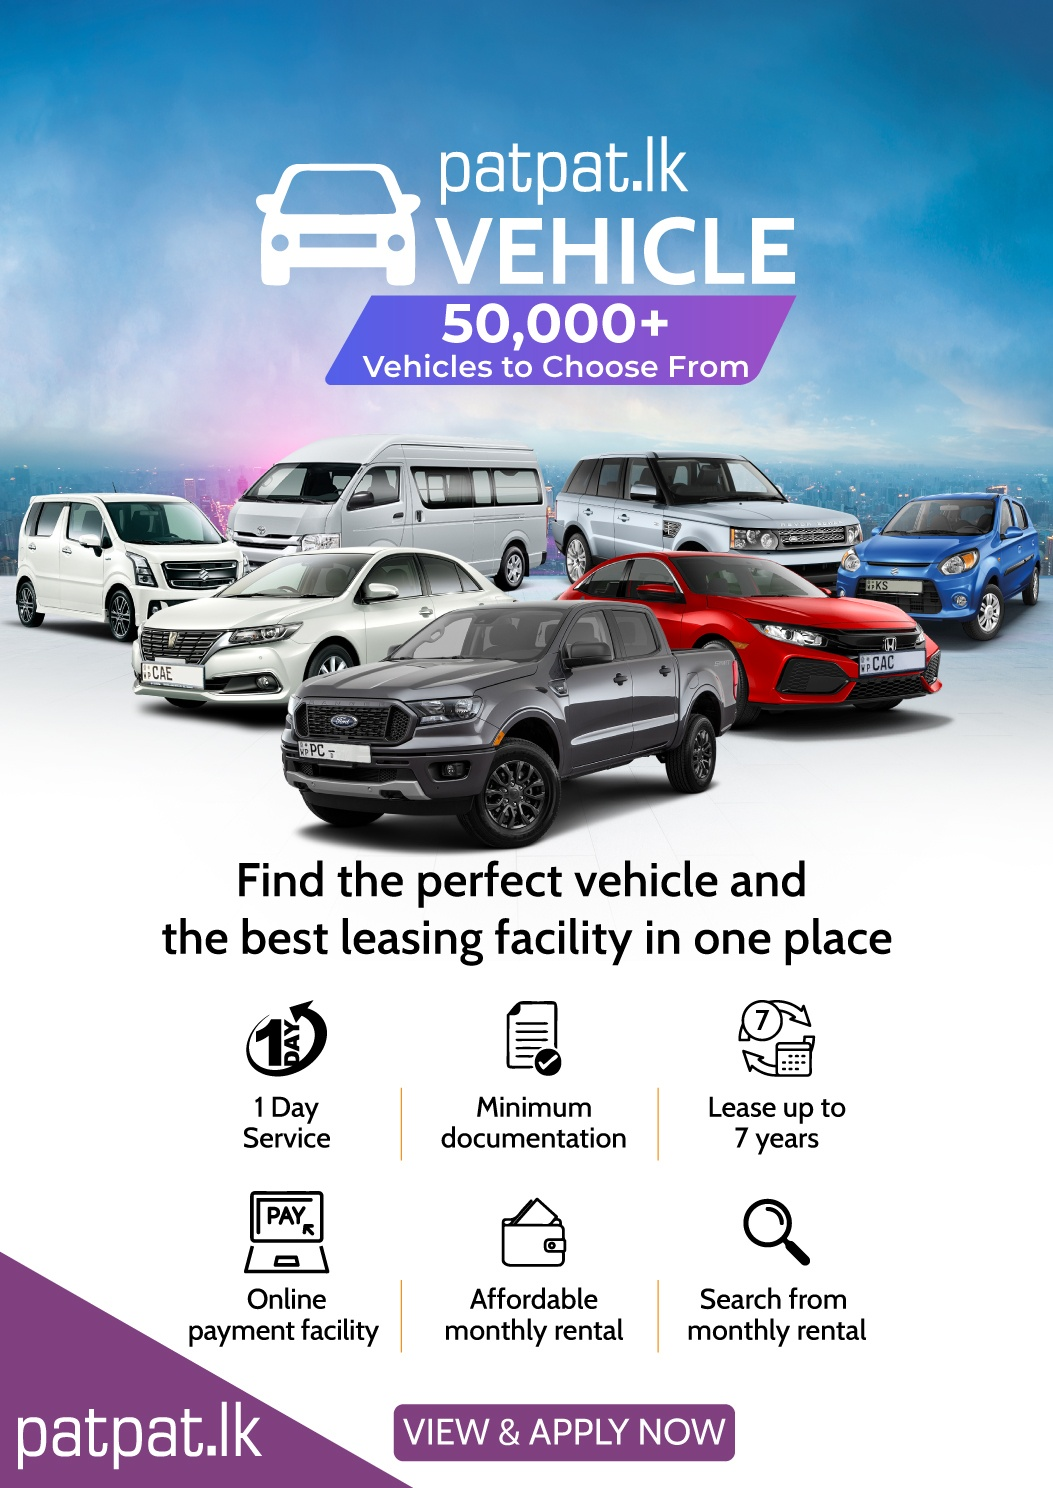 LEASING is now EASY with patpat.lk. Search for your dream vehicle today